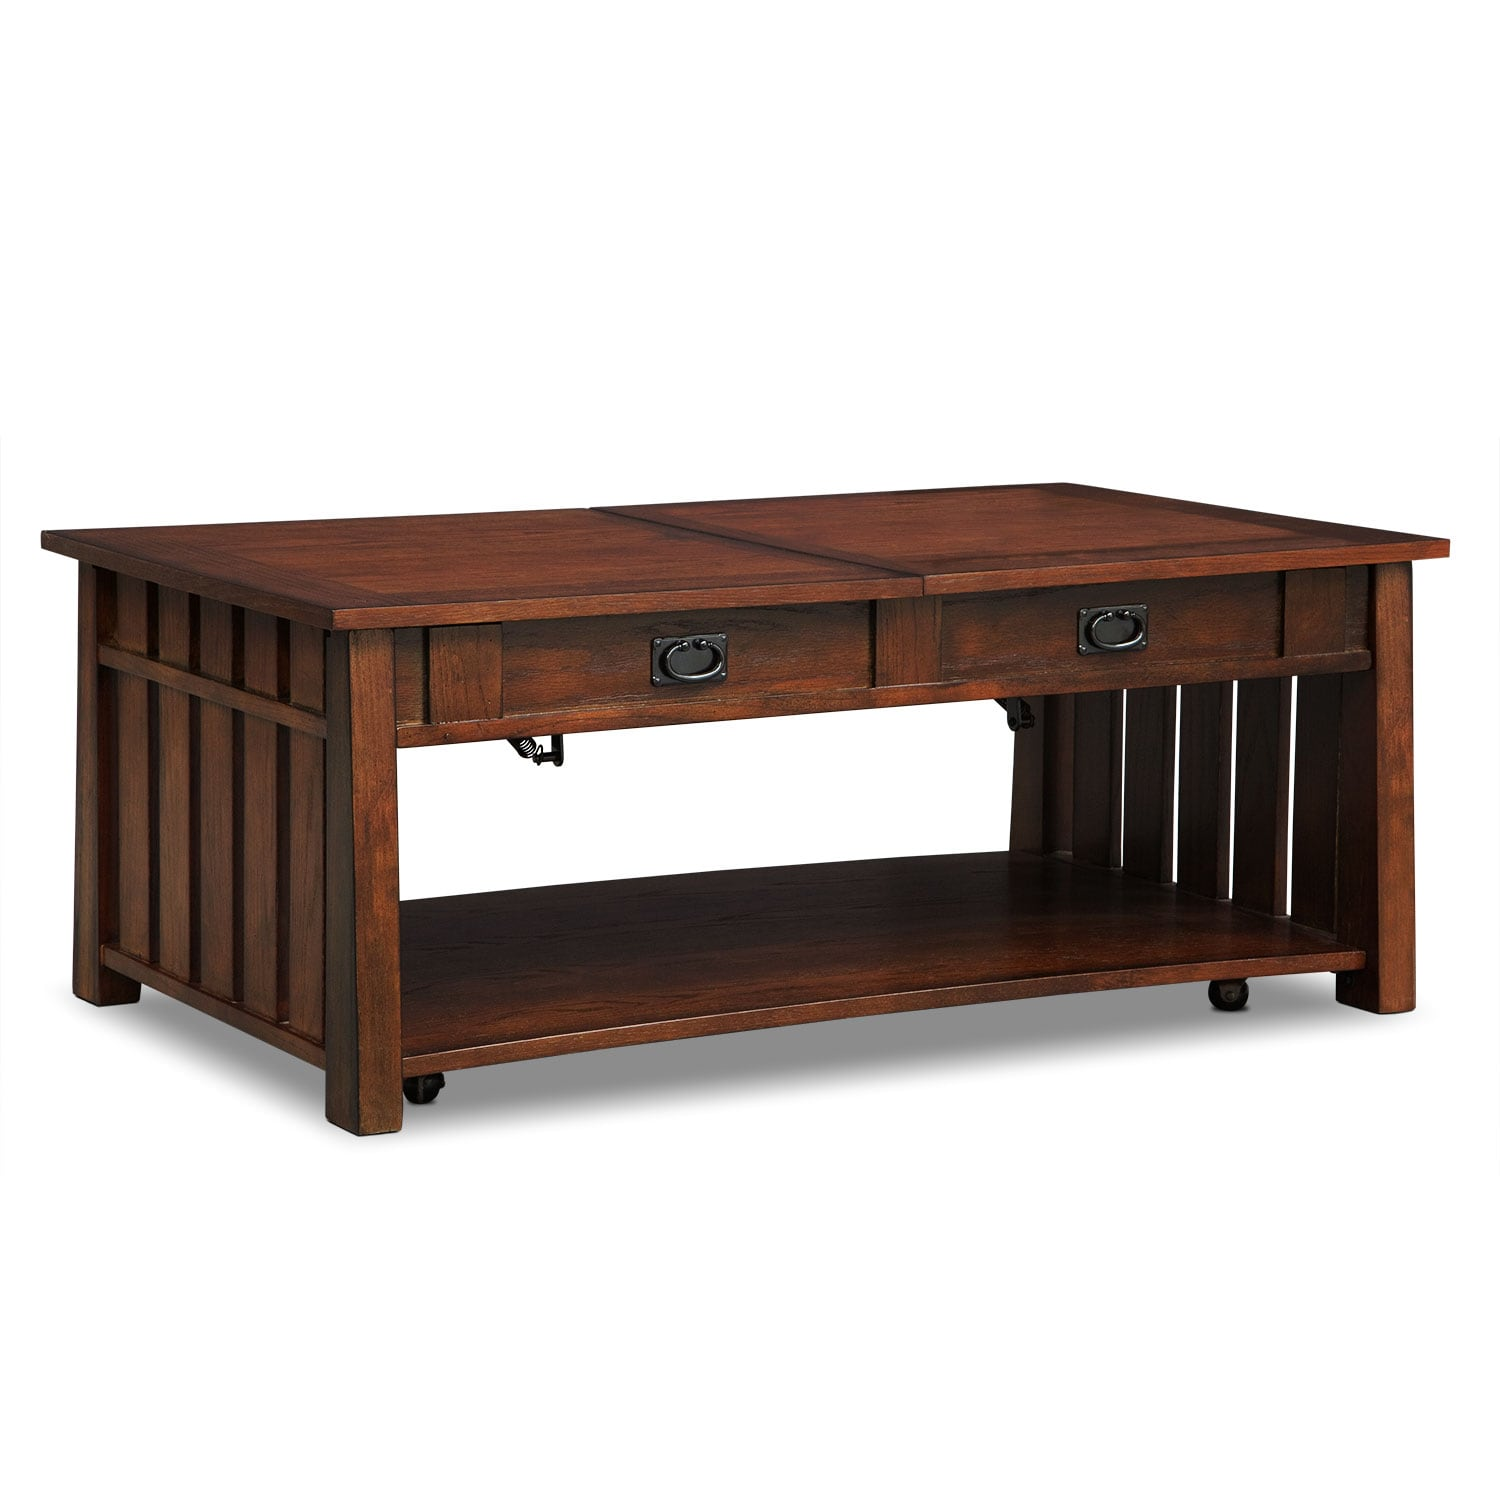 Coffee Tables | Living Room Tables | Value City Furniture and Mattresses